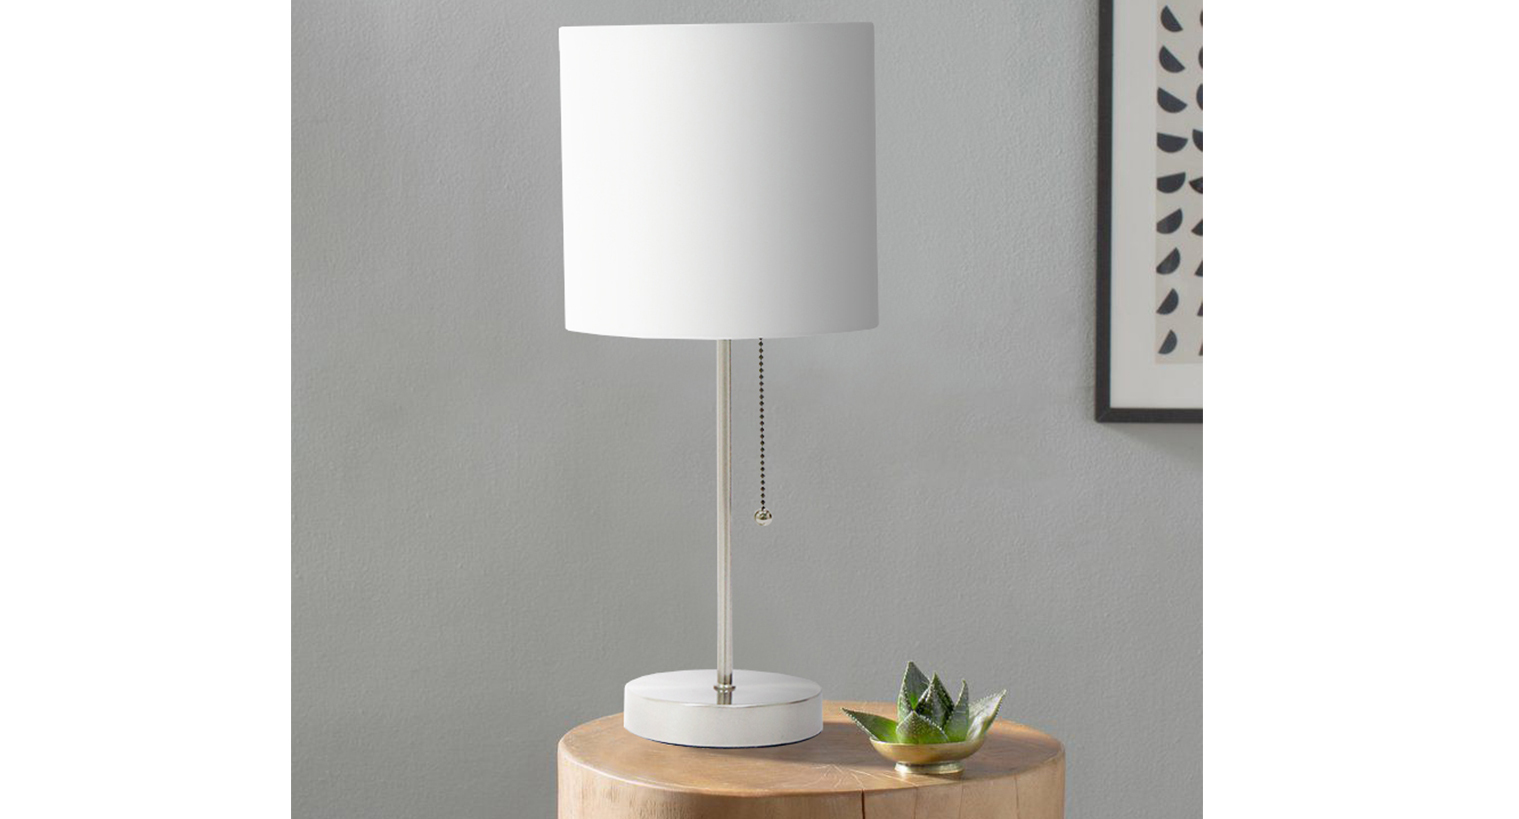 Table Metal Blanc Lampe De Table En M Tal Blanc 19x19x42 4b Table Lamps Lampes De